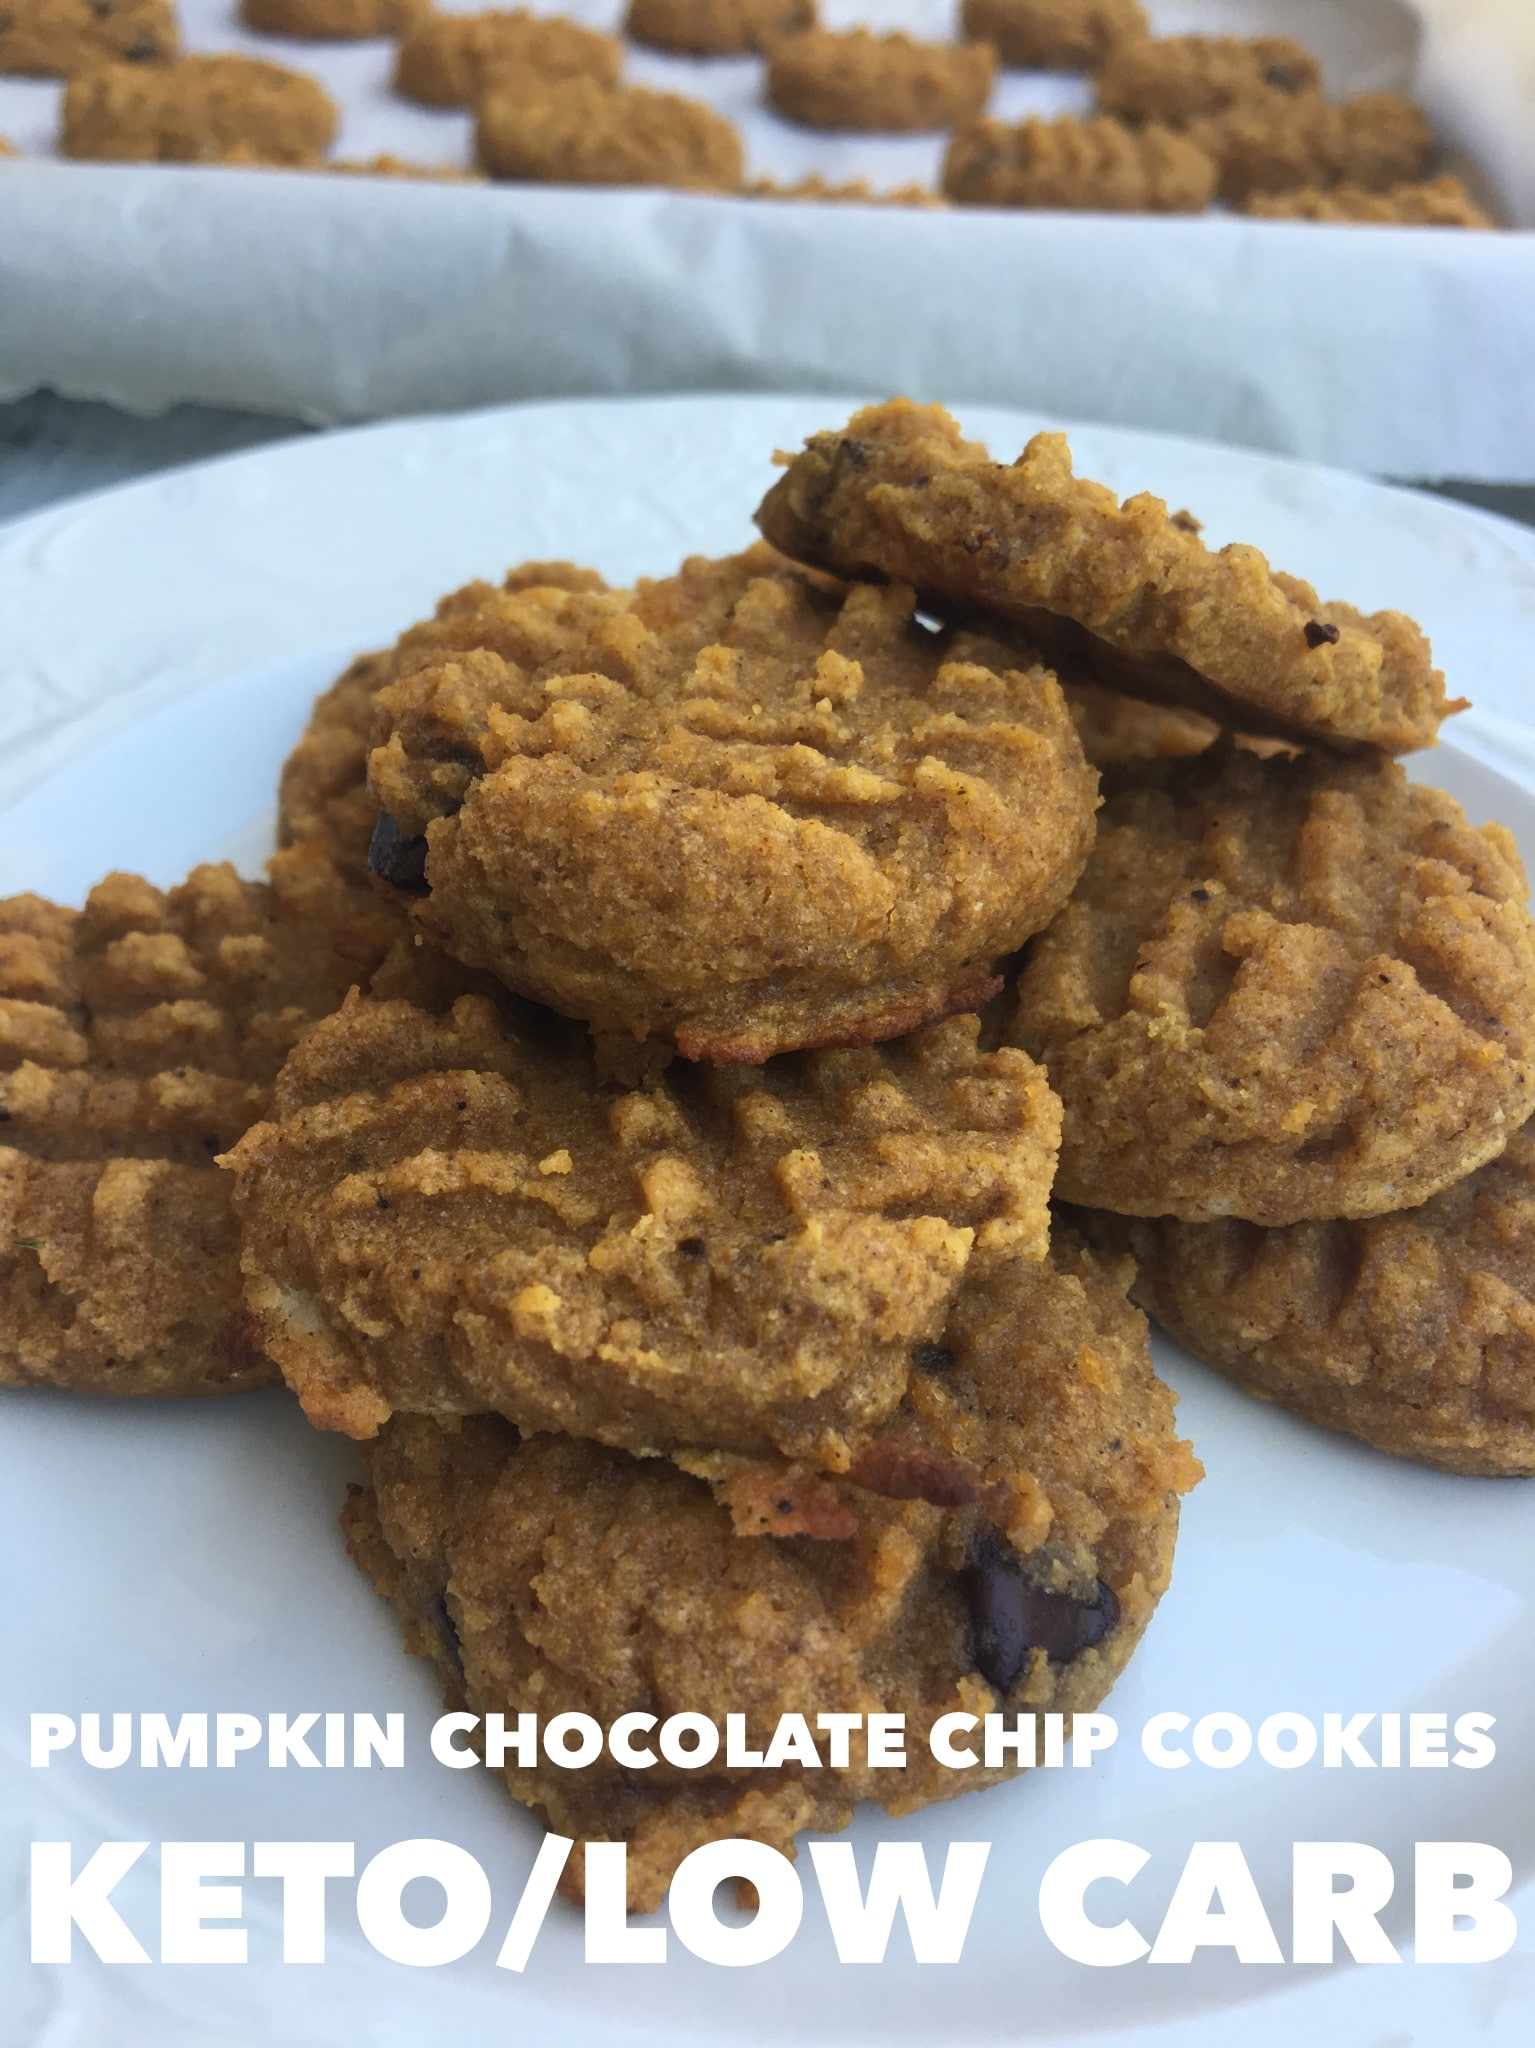 Pumpkin Chocolate Chip Cookies {Keto / Low Carb}